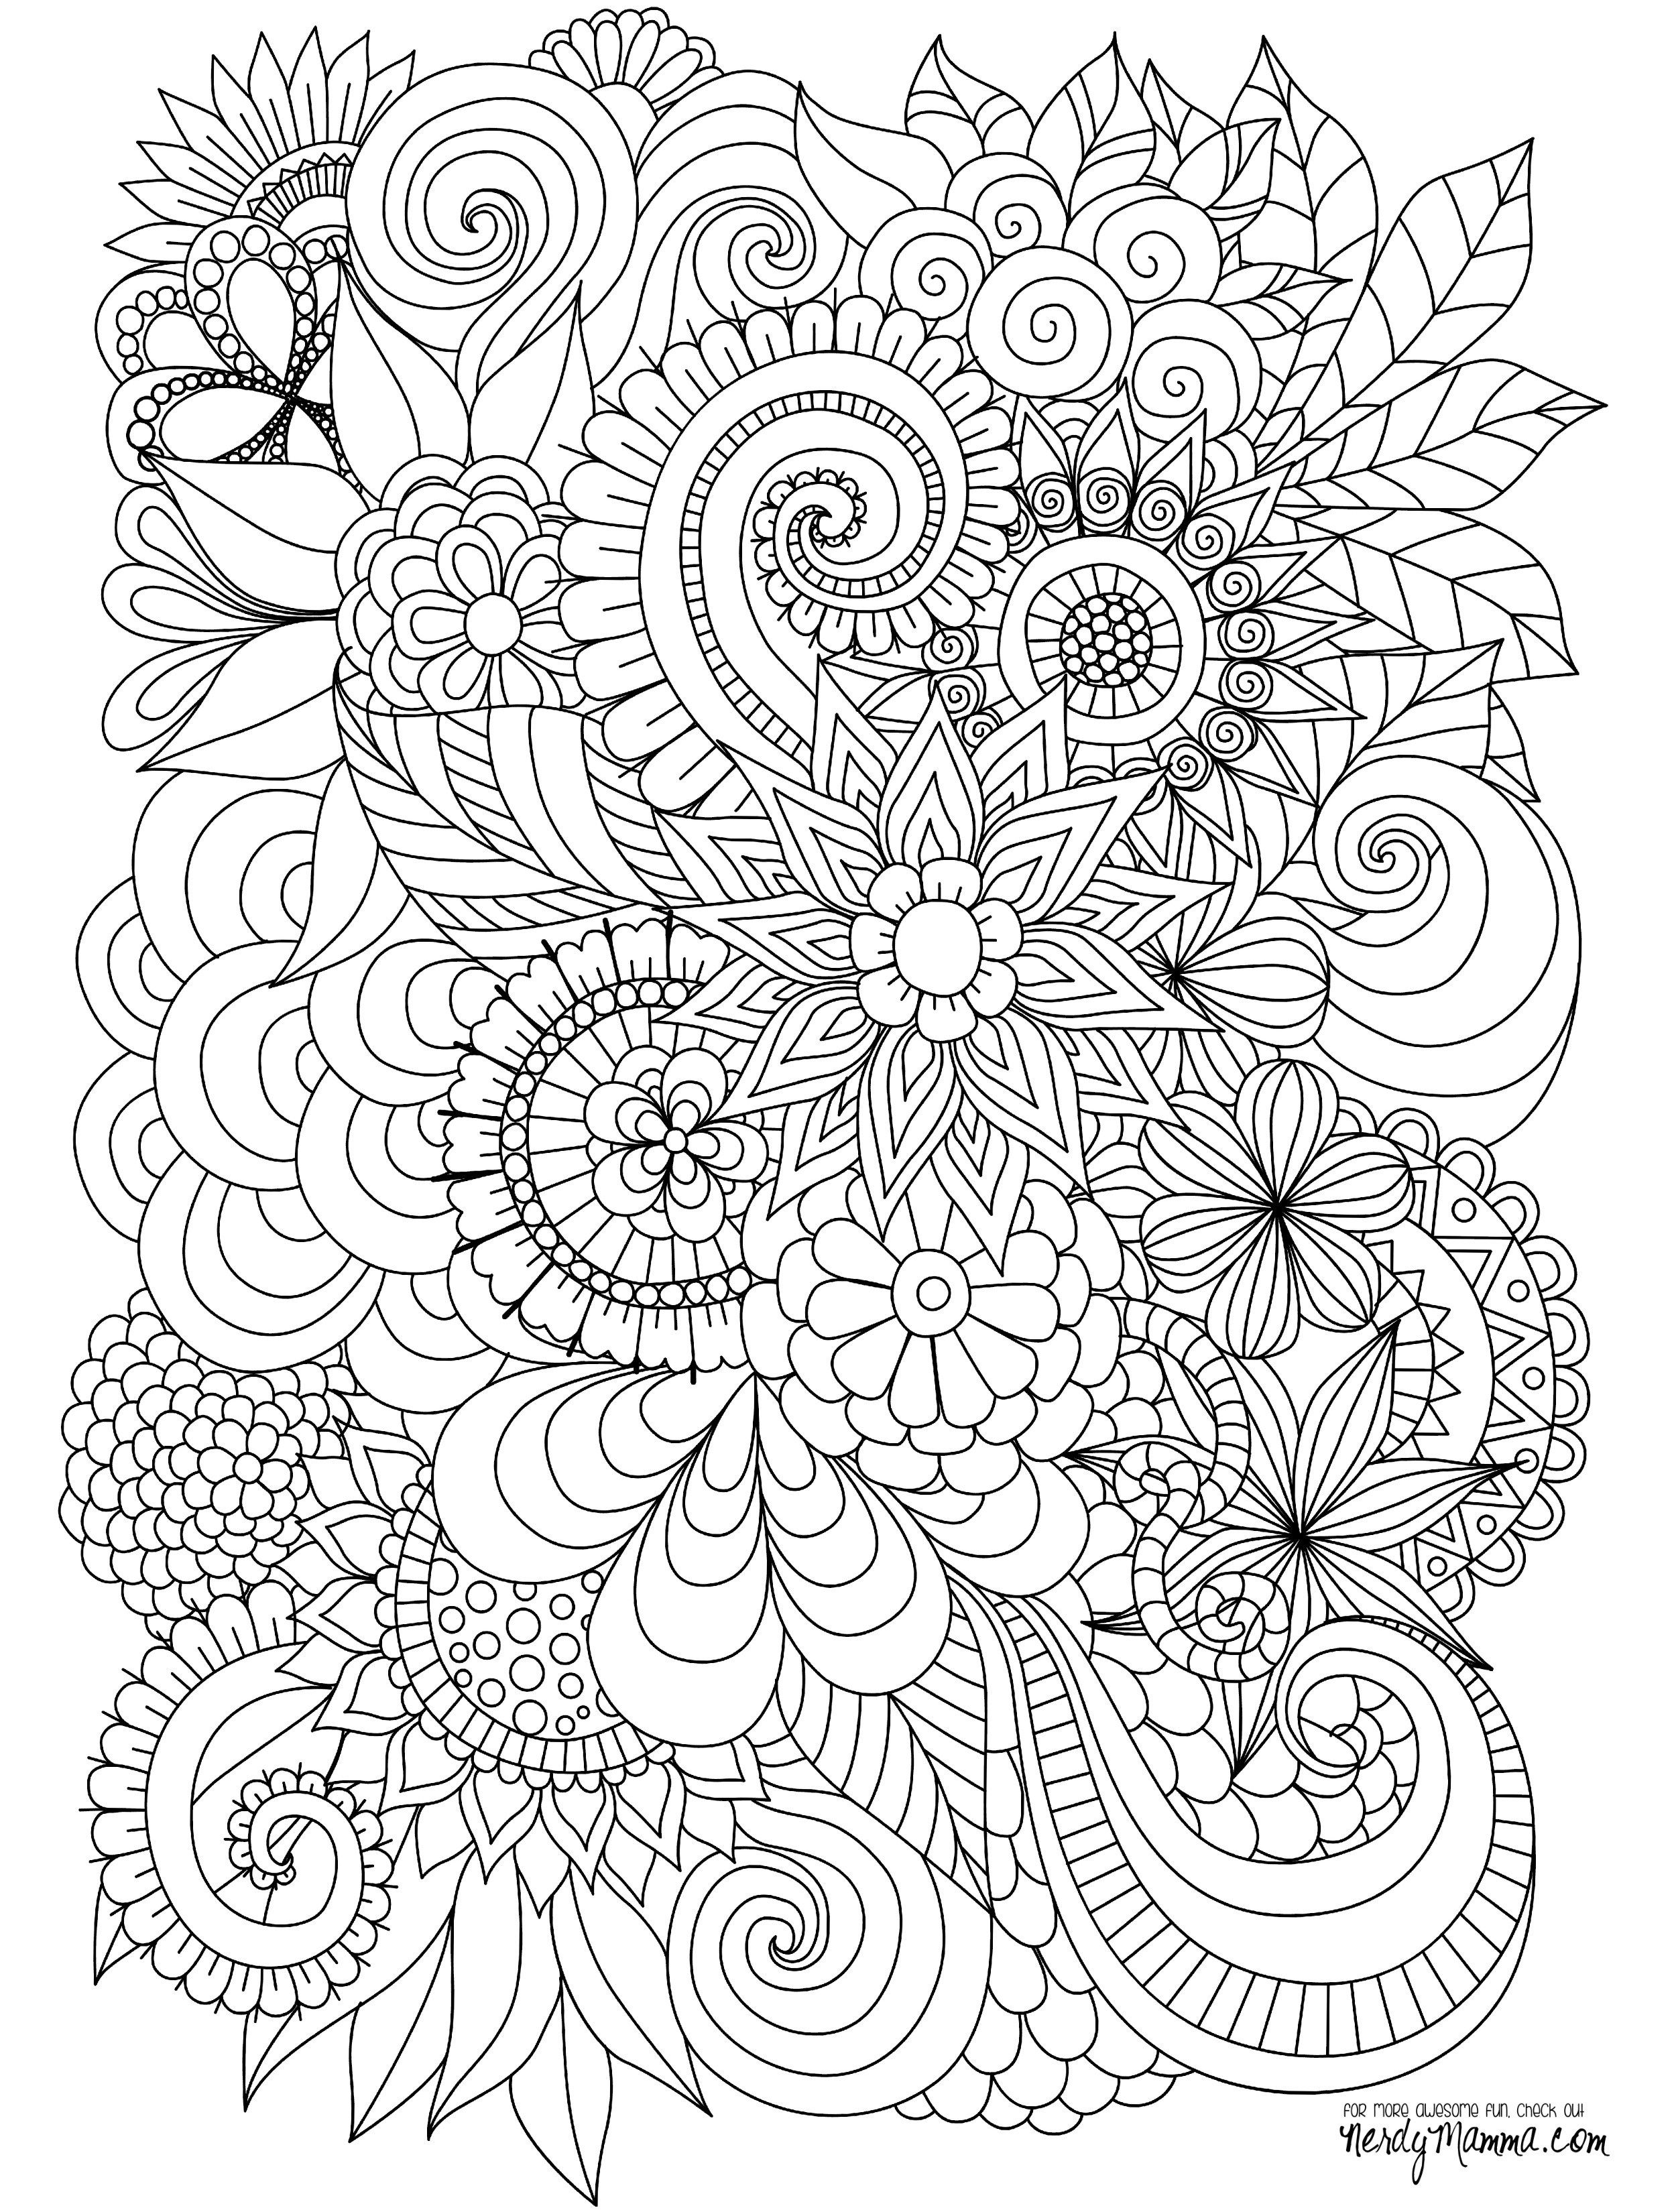 black and white coloring pages for adults print adult with flowers pattern black and white doodle black coloring and pages adults white for